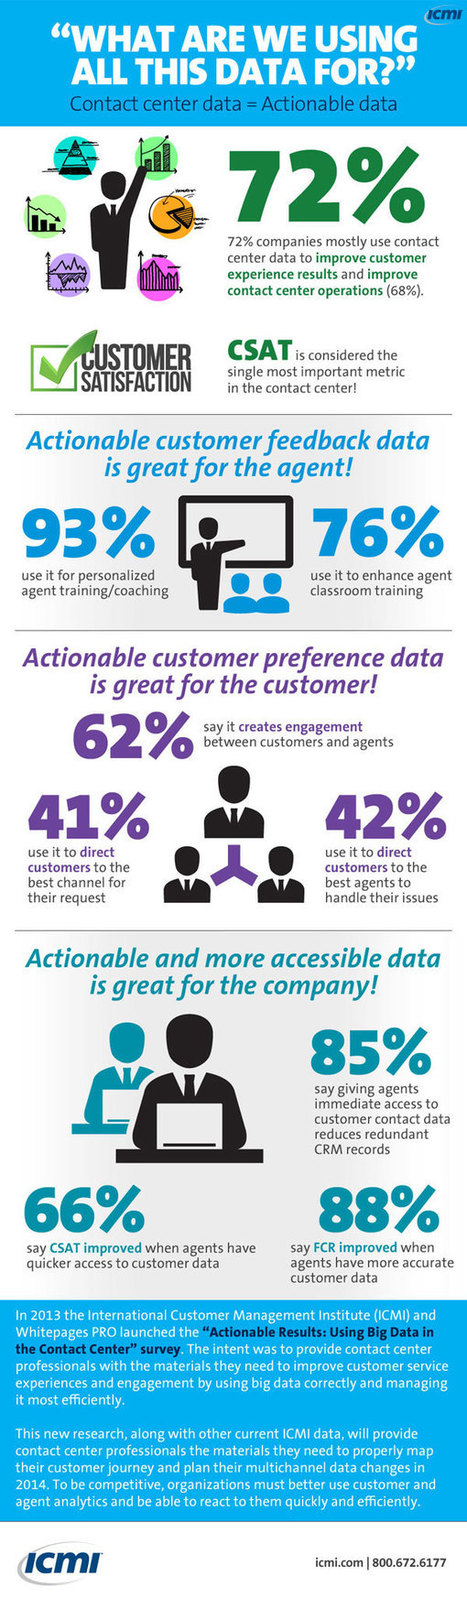 INFOGRAPHIC: Using Big Data to Improve Contact Center Operations - #bigdata #custsrv | Designing  services | Scoop.it